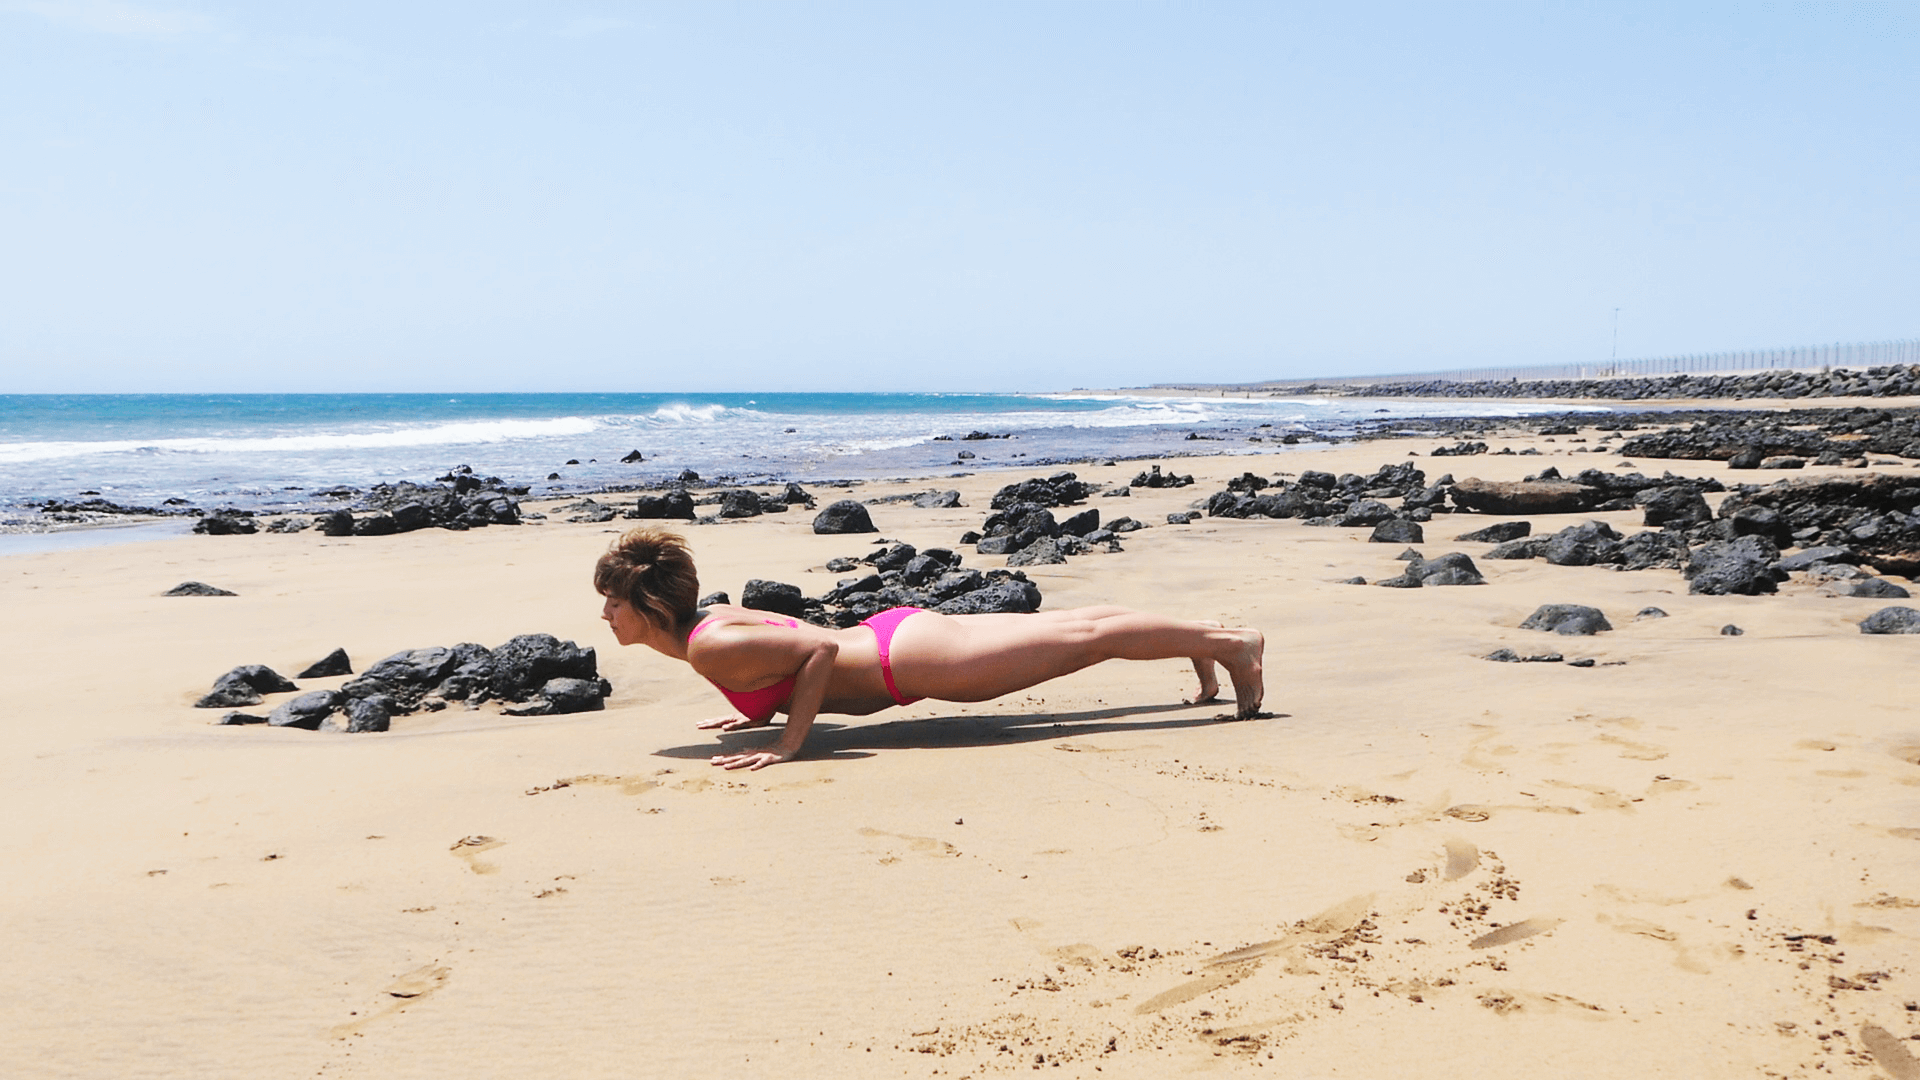 Chaturanga en la playa